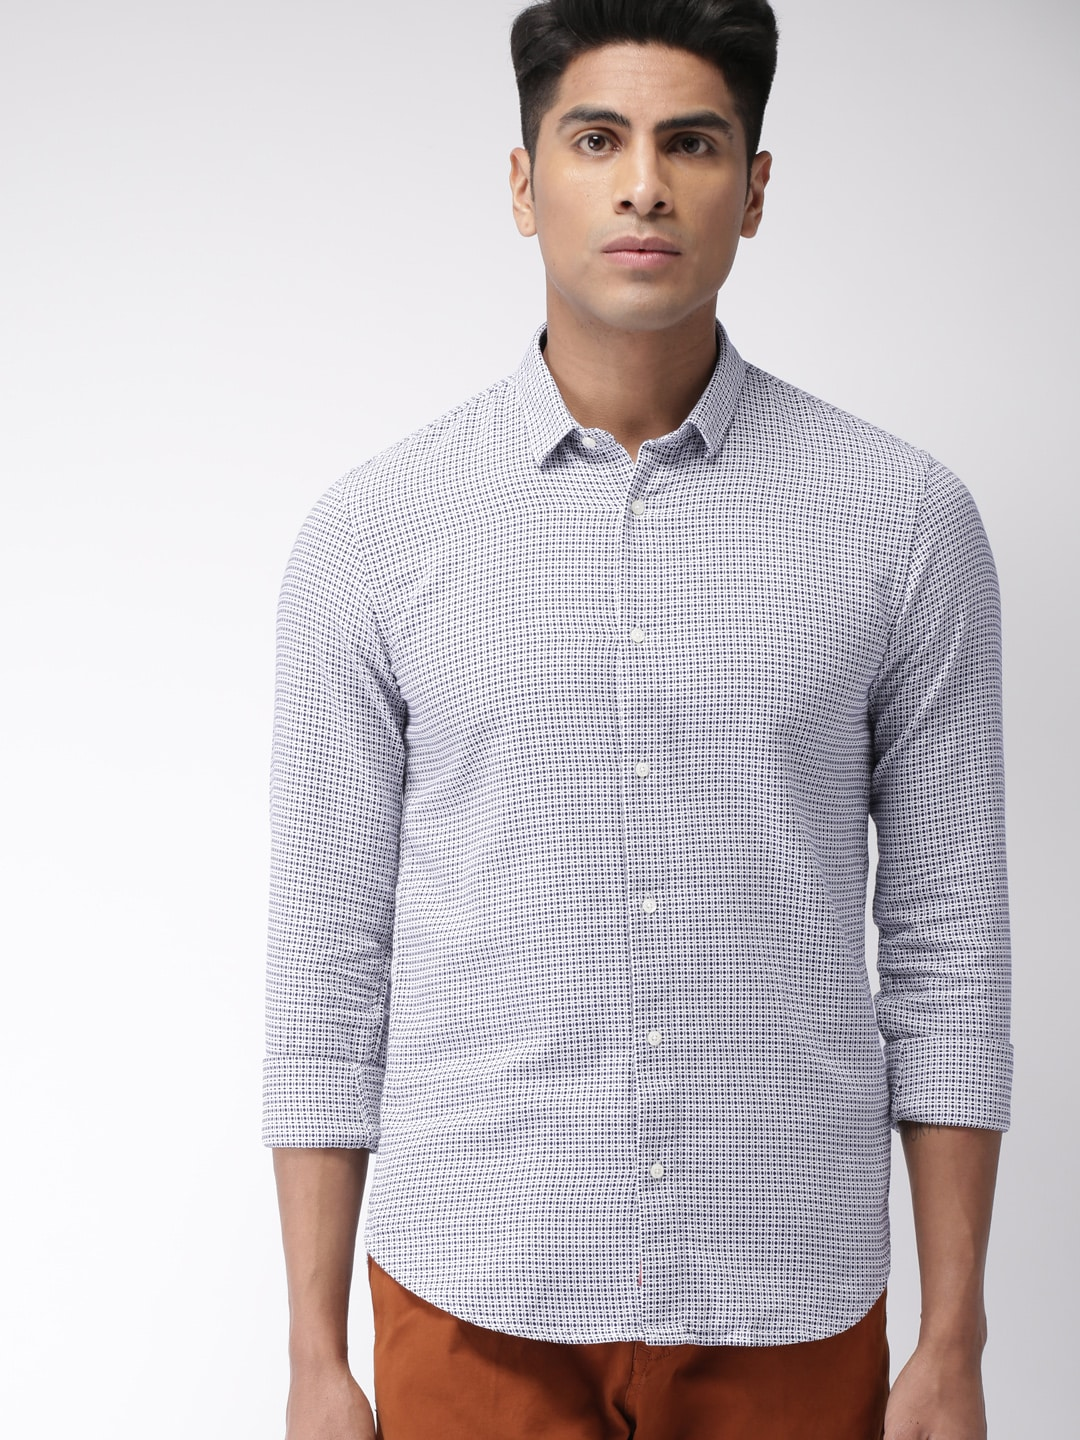 Cotton Shirts - Buy Cotton Shirt Online in India  320e708b0